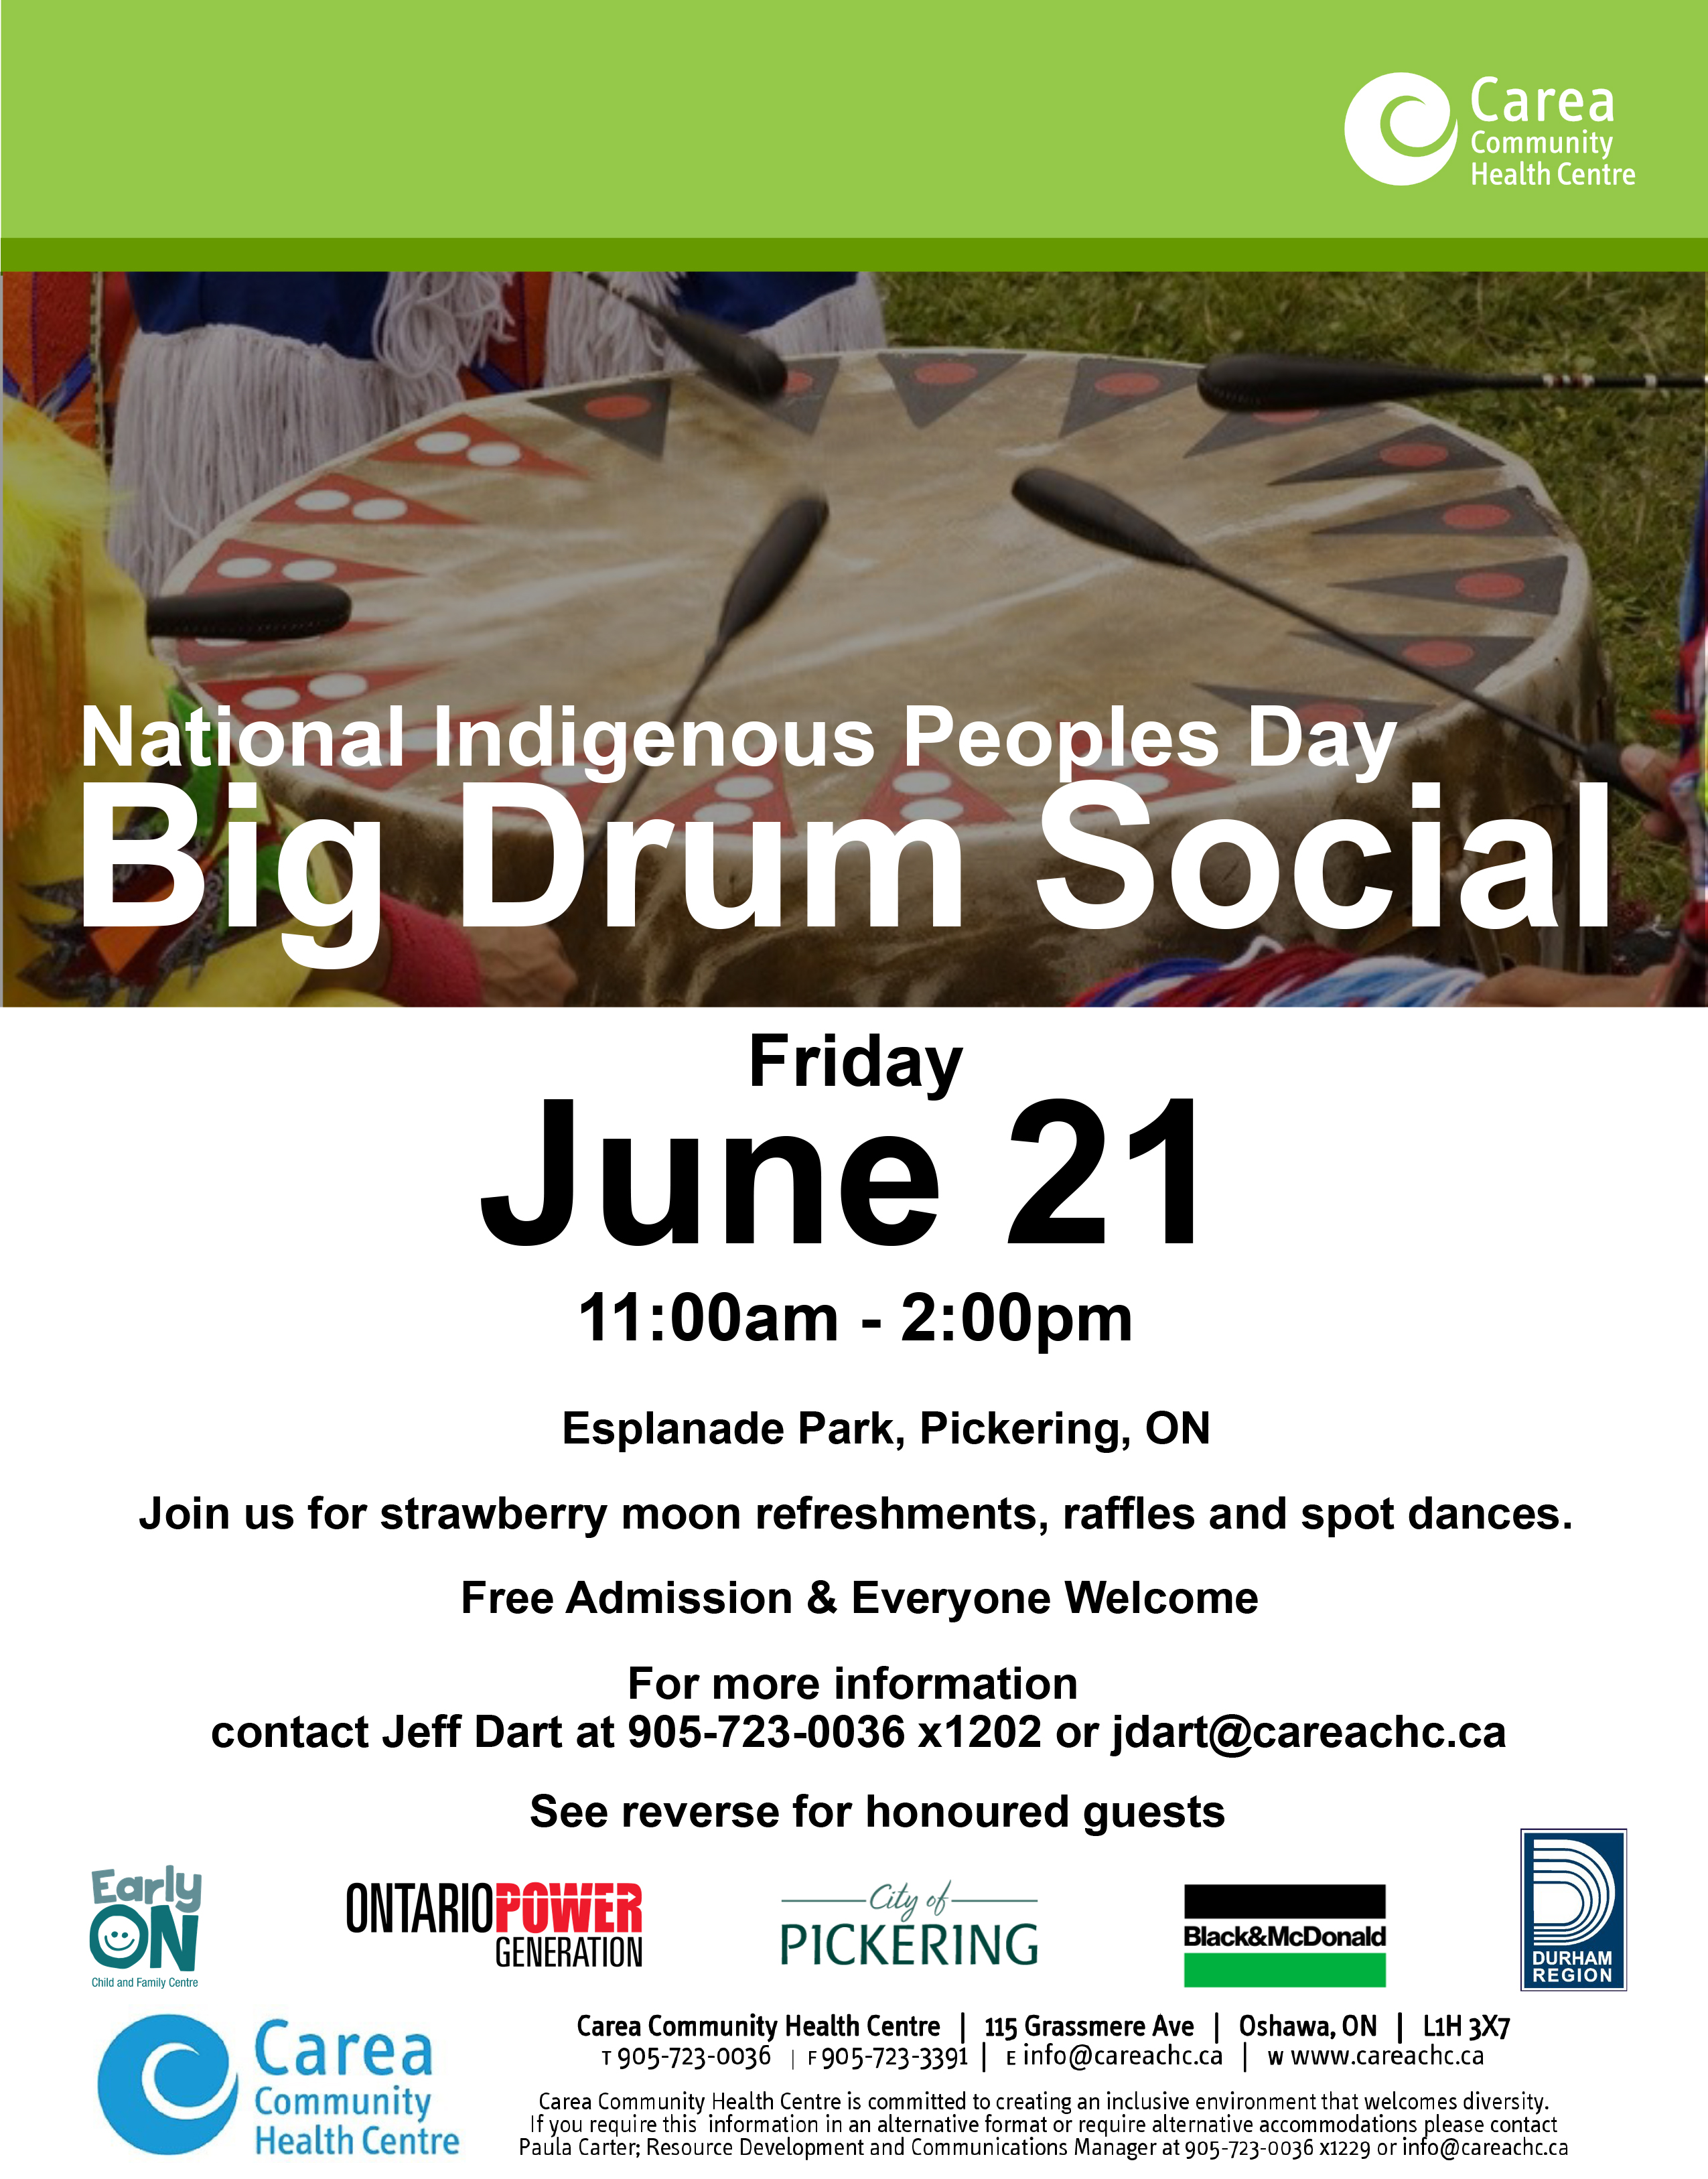 poster for Big Drum Social for Indigenous Peoples Day